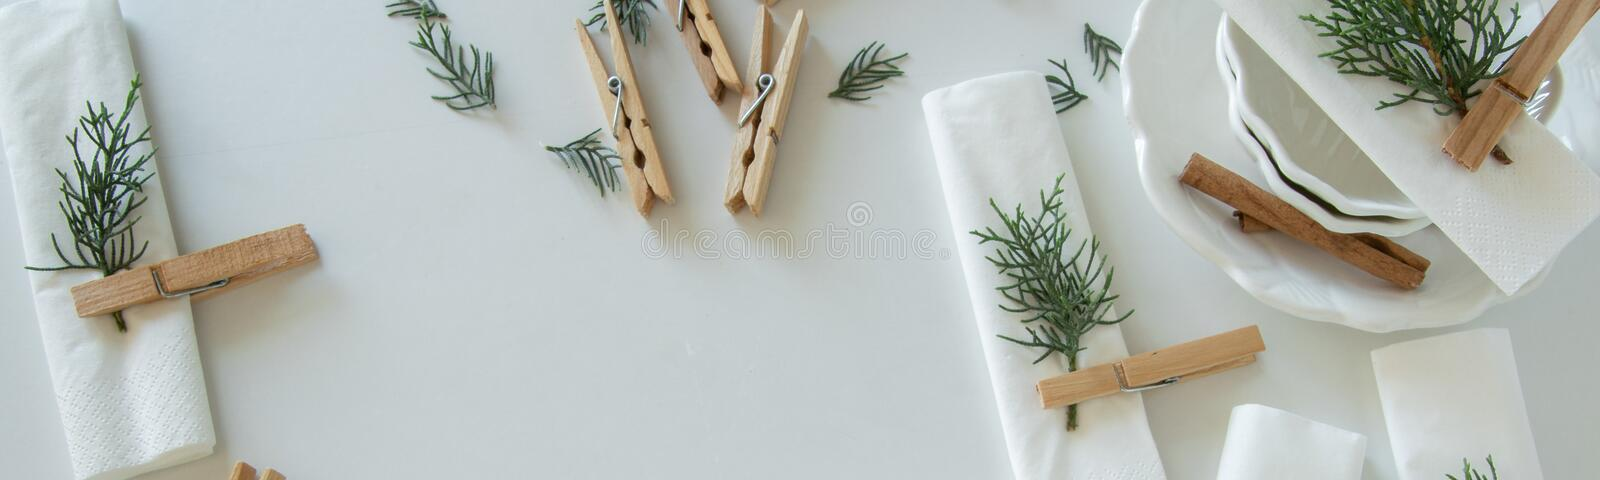 Preparations about arranging the table for winter holidays. Winter decoration stock photos